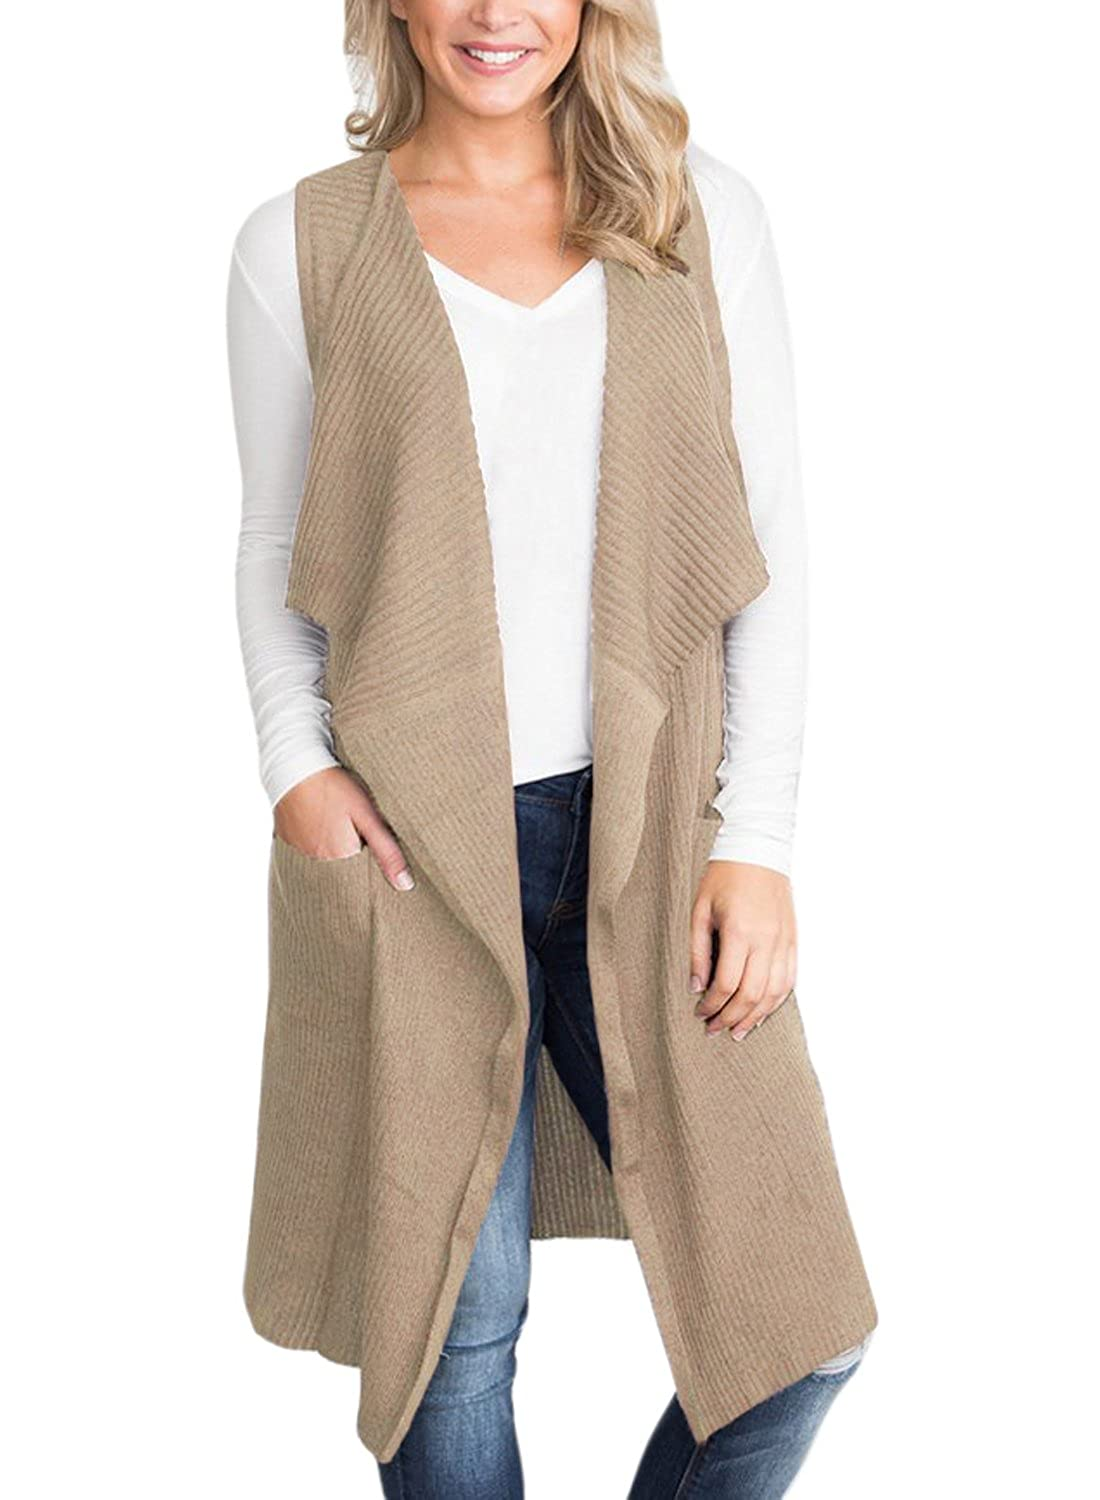 BLENCOT Women's Lightweight Sleeveless Open Front Cardigan Sweater Vest Pockets BL27801